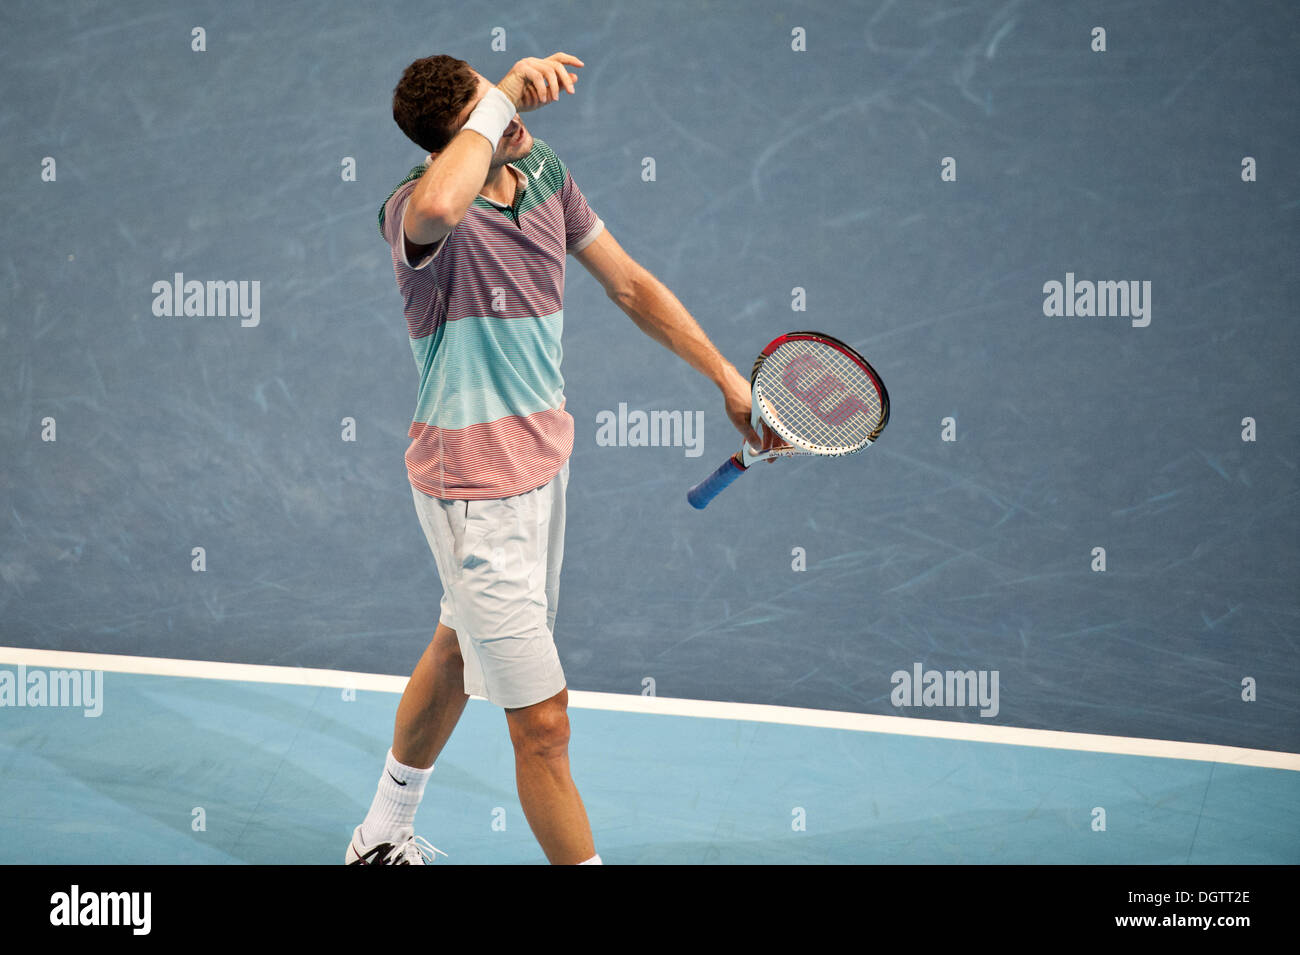 Basel, Switzerland. 25th Oct, 2013. Grigor Dimitrov (BUL) disappointed during a match of the quarter finals of the Swiss Indoors at St. Jakobshalle on Friday. Photo: Miroslav Dakov/ Alamy Live News - Stock Image